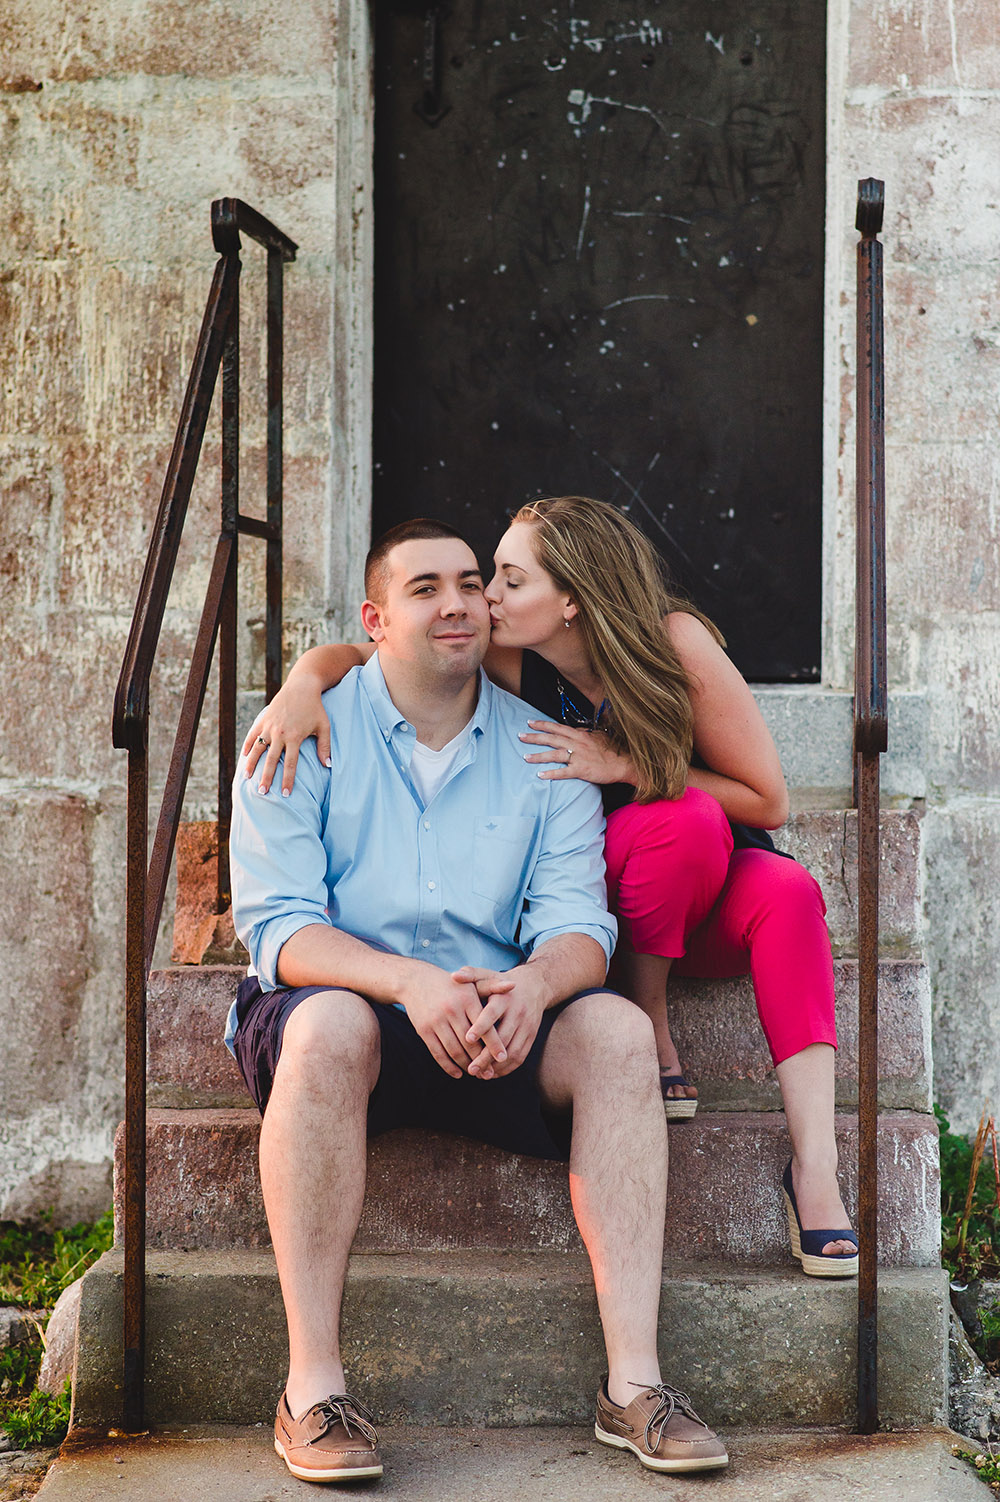 ct-engagement-photos-greg-lewis-photography-24